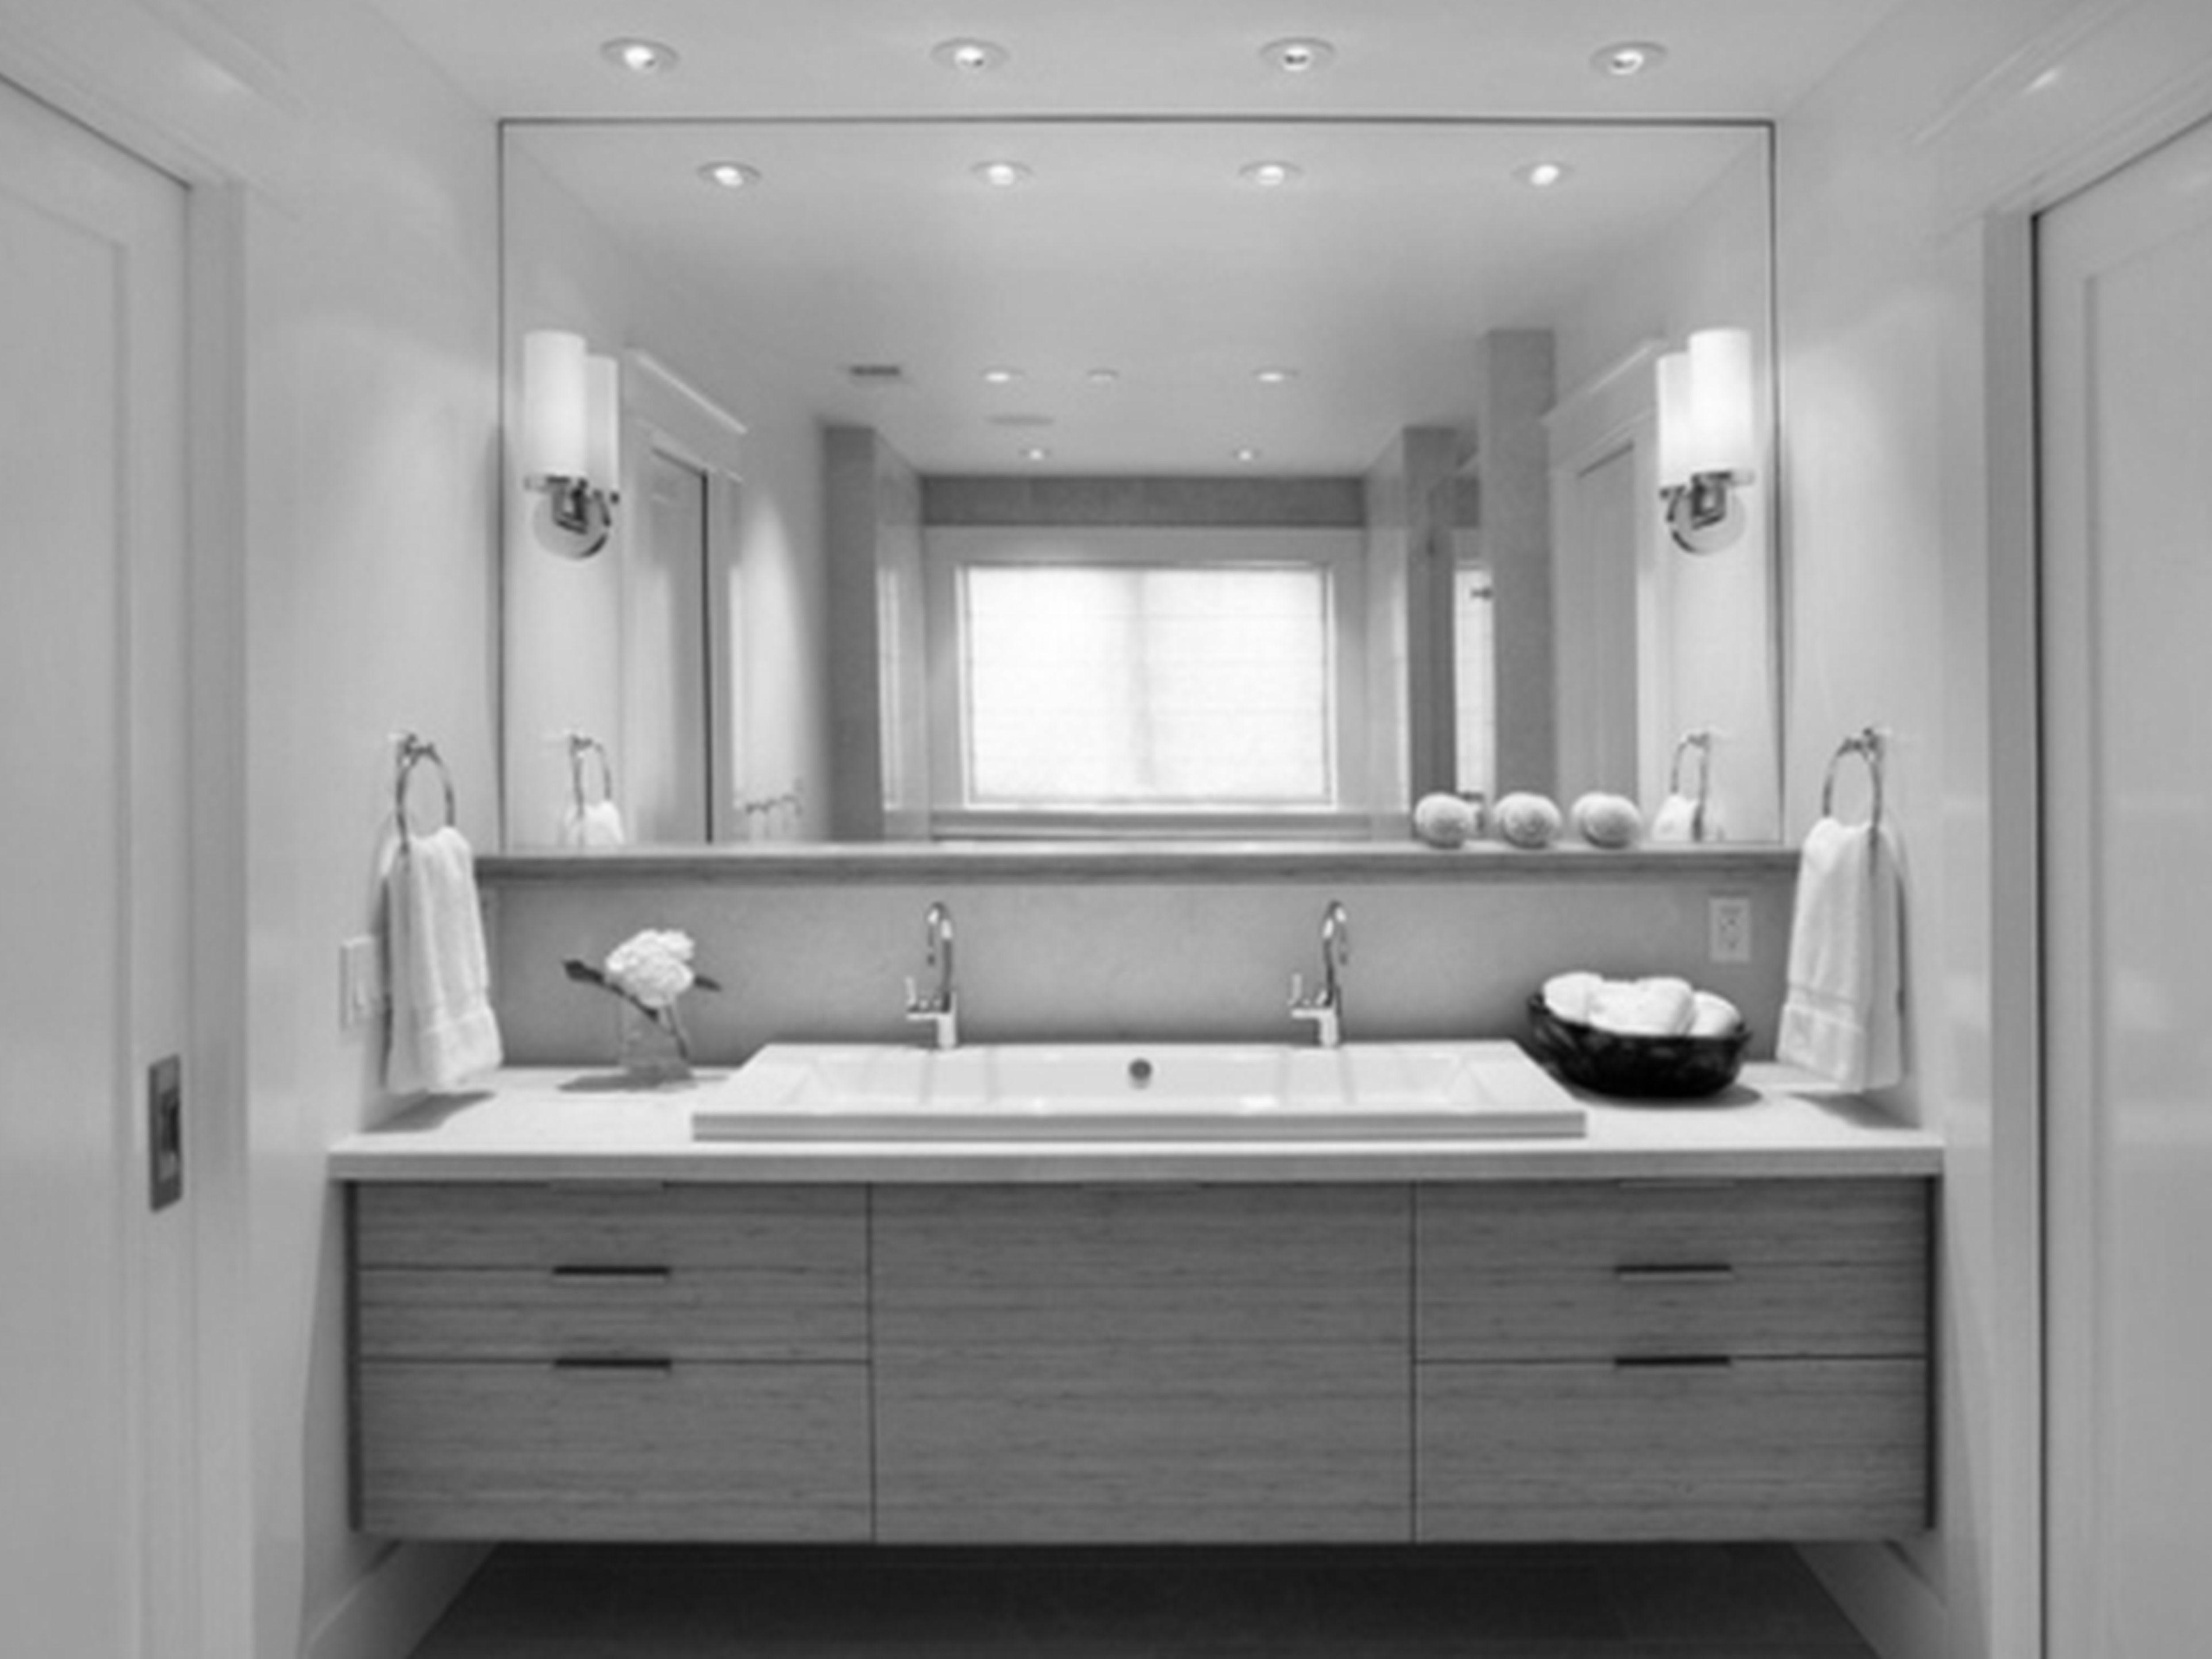 20 ideas of modern bathroom mirrors mirror ideas - Modern vanity mirrors for bathroom ...